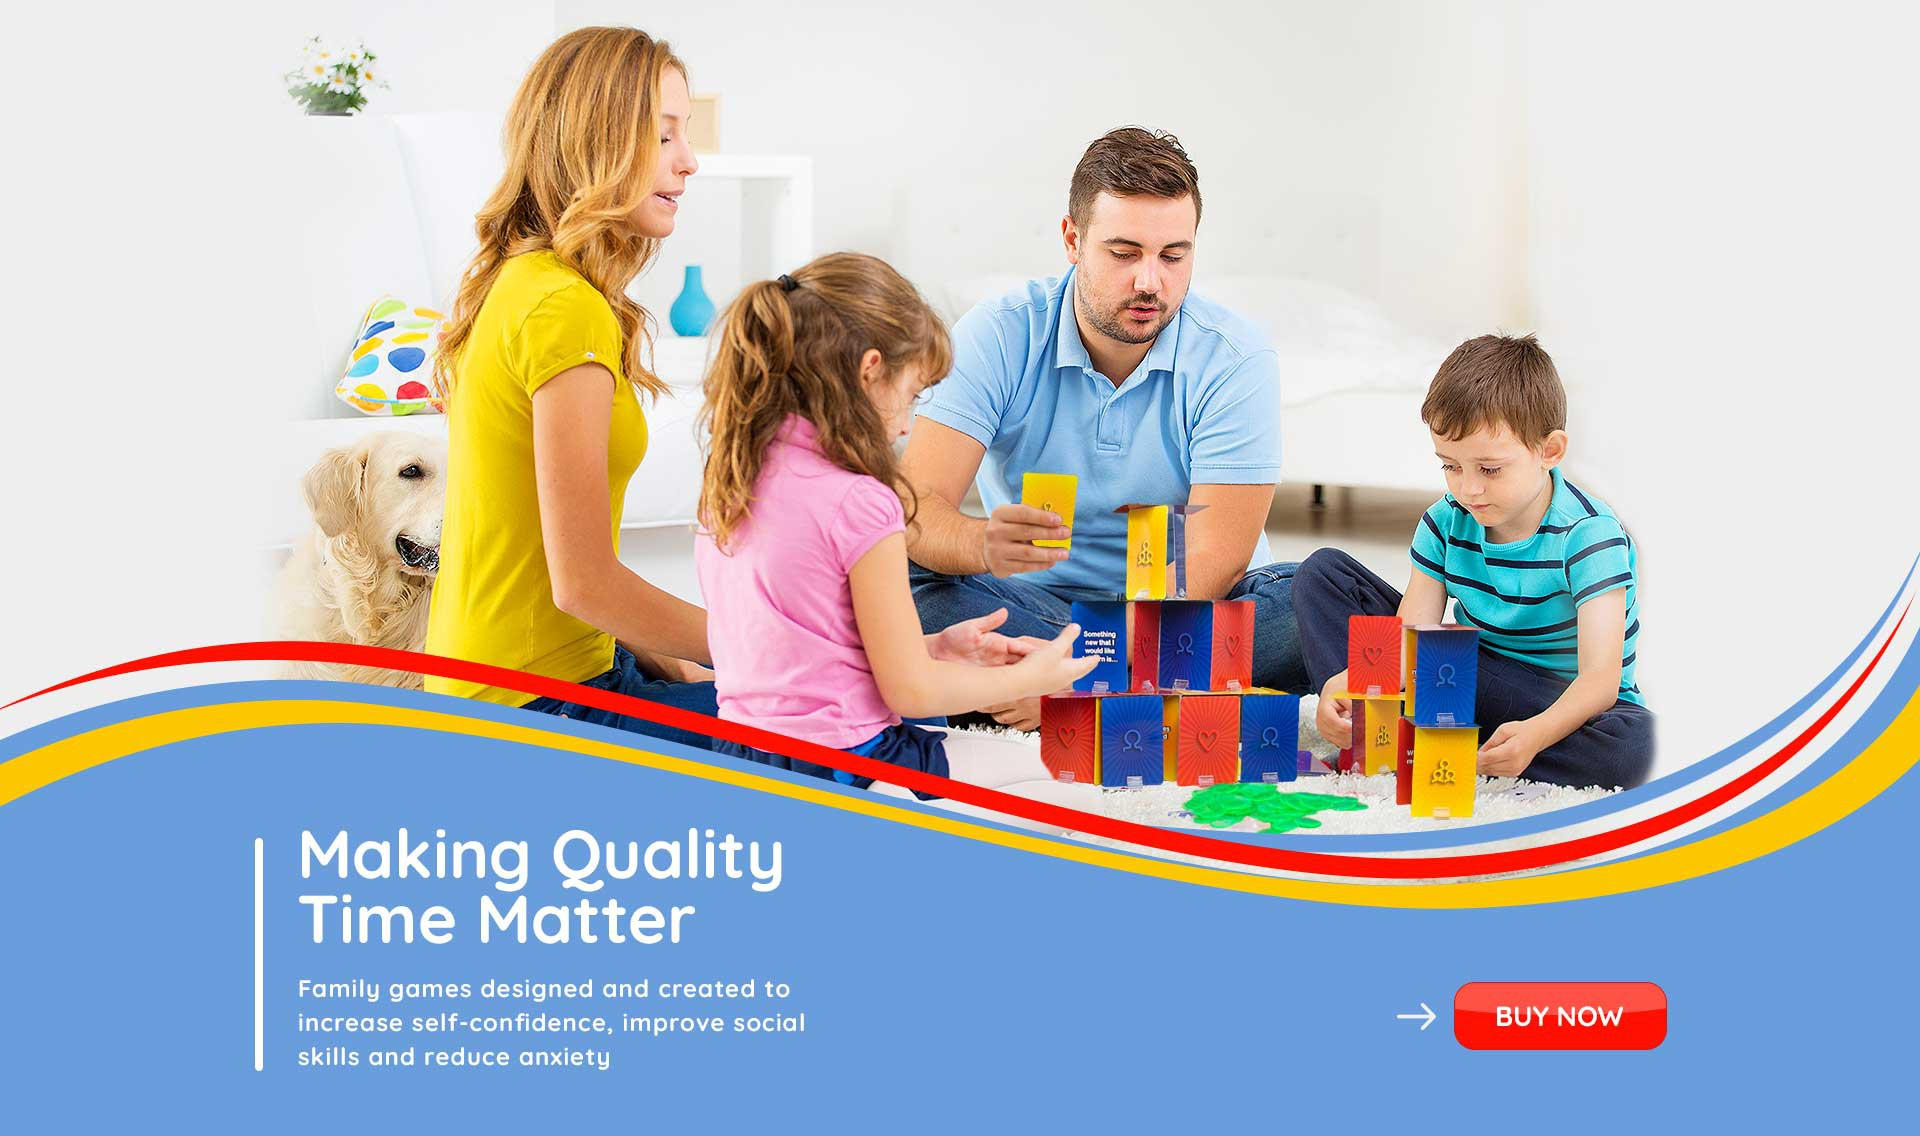 A spectacular header banner for a new site offering board games for family therapy